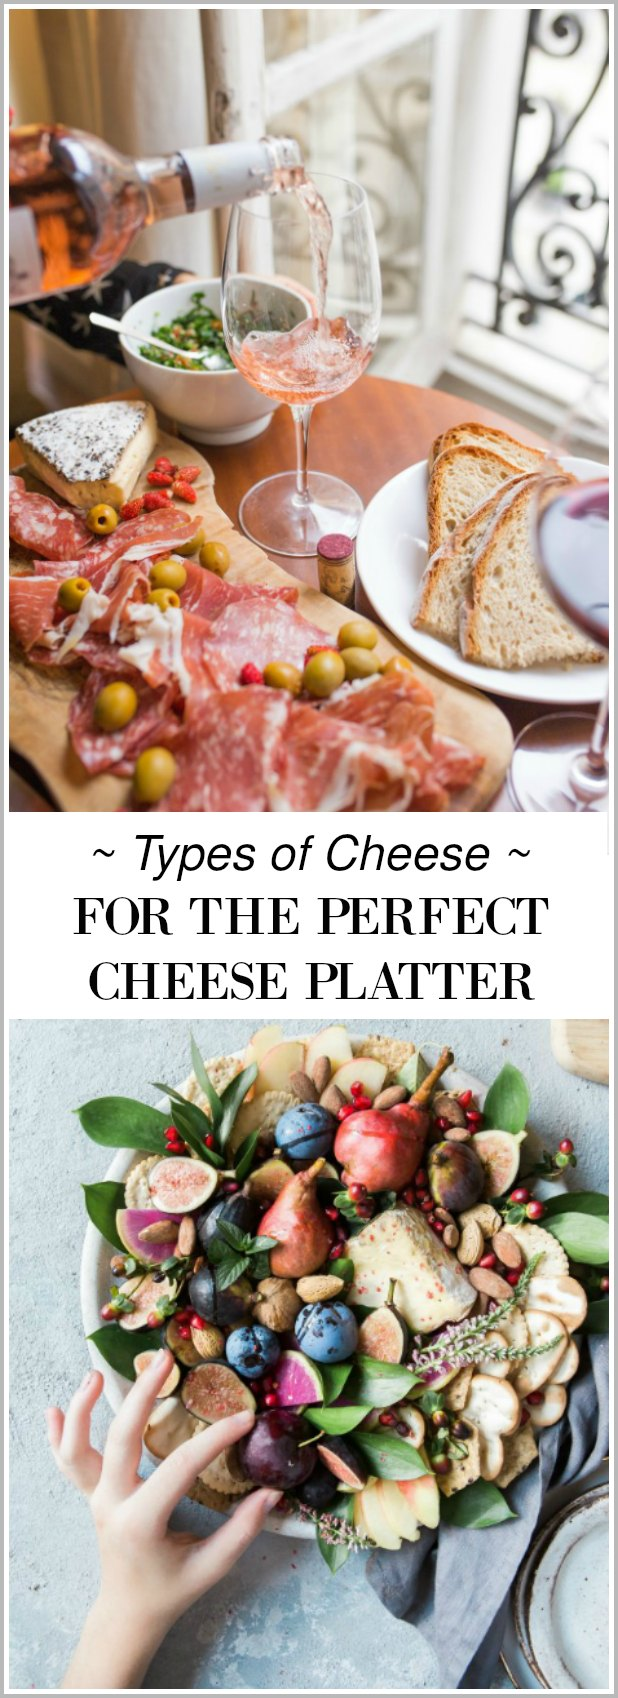 See these no fail tips on picking the types of cheese for the perfect cheese platter & Types of Cheese For The Perfect Cheese Platter - Setting for Four